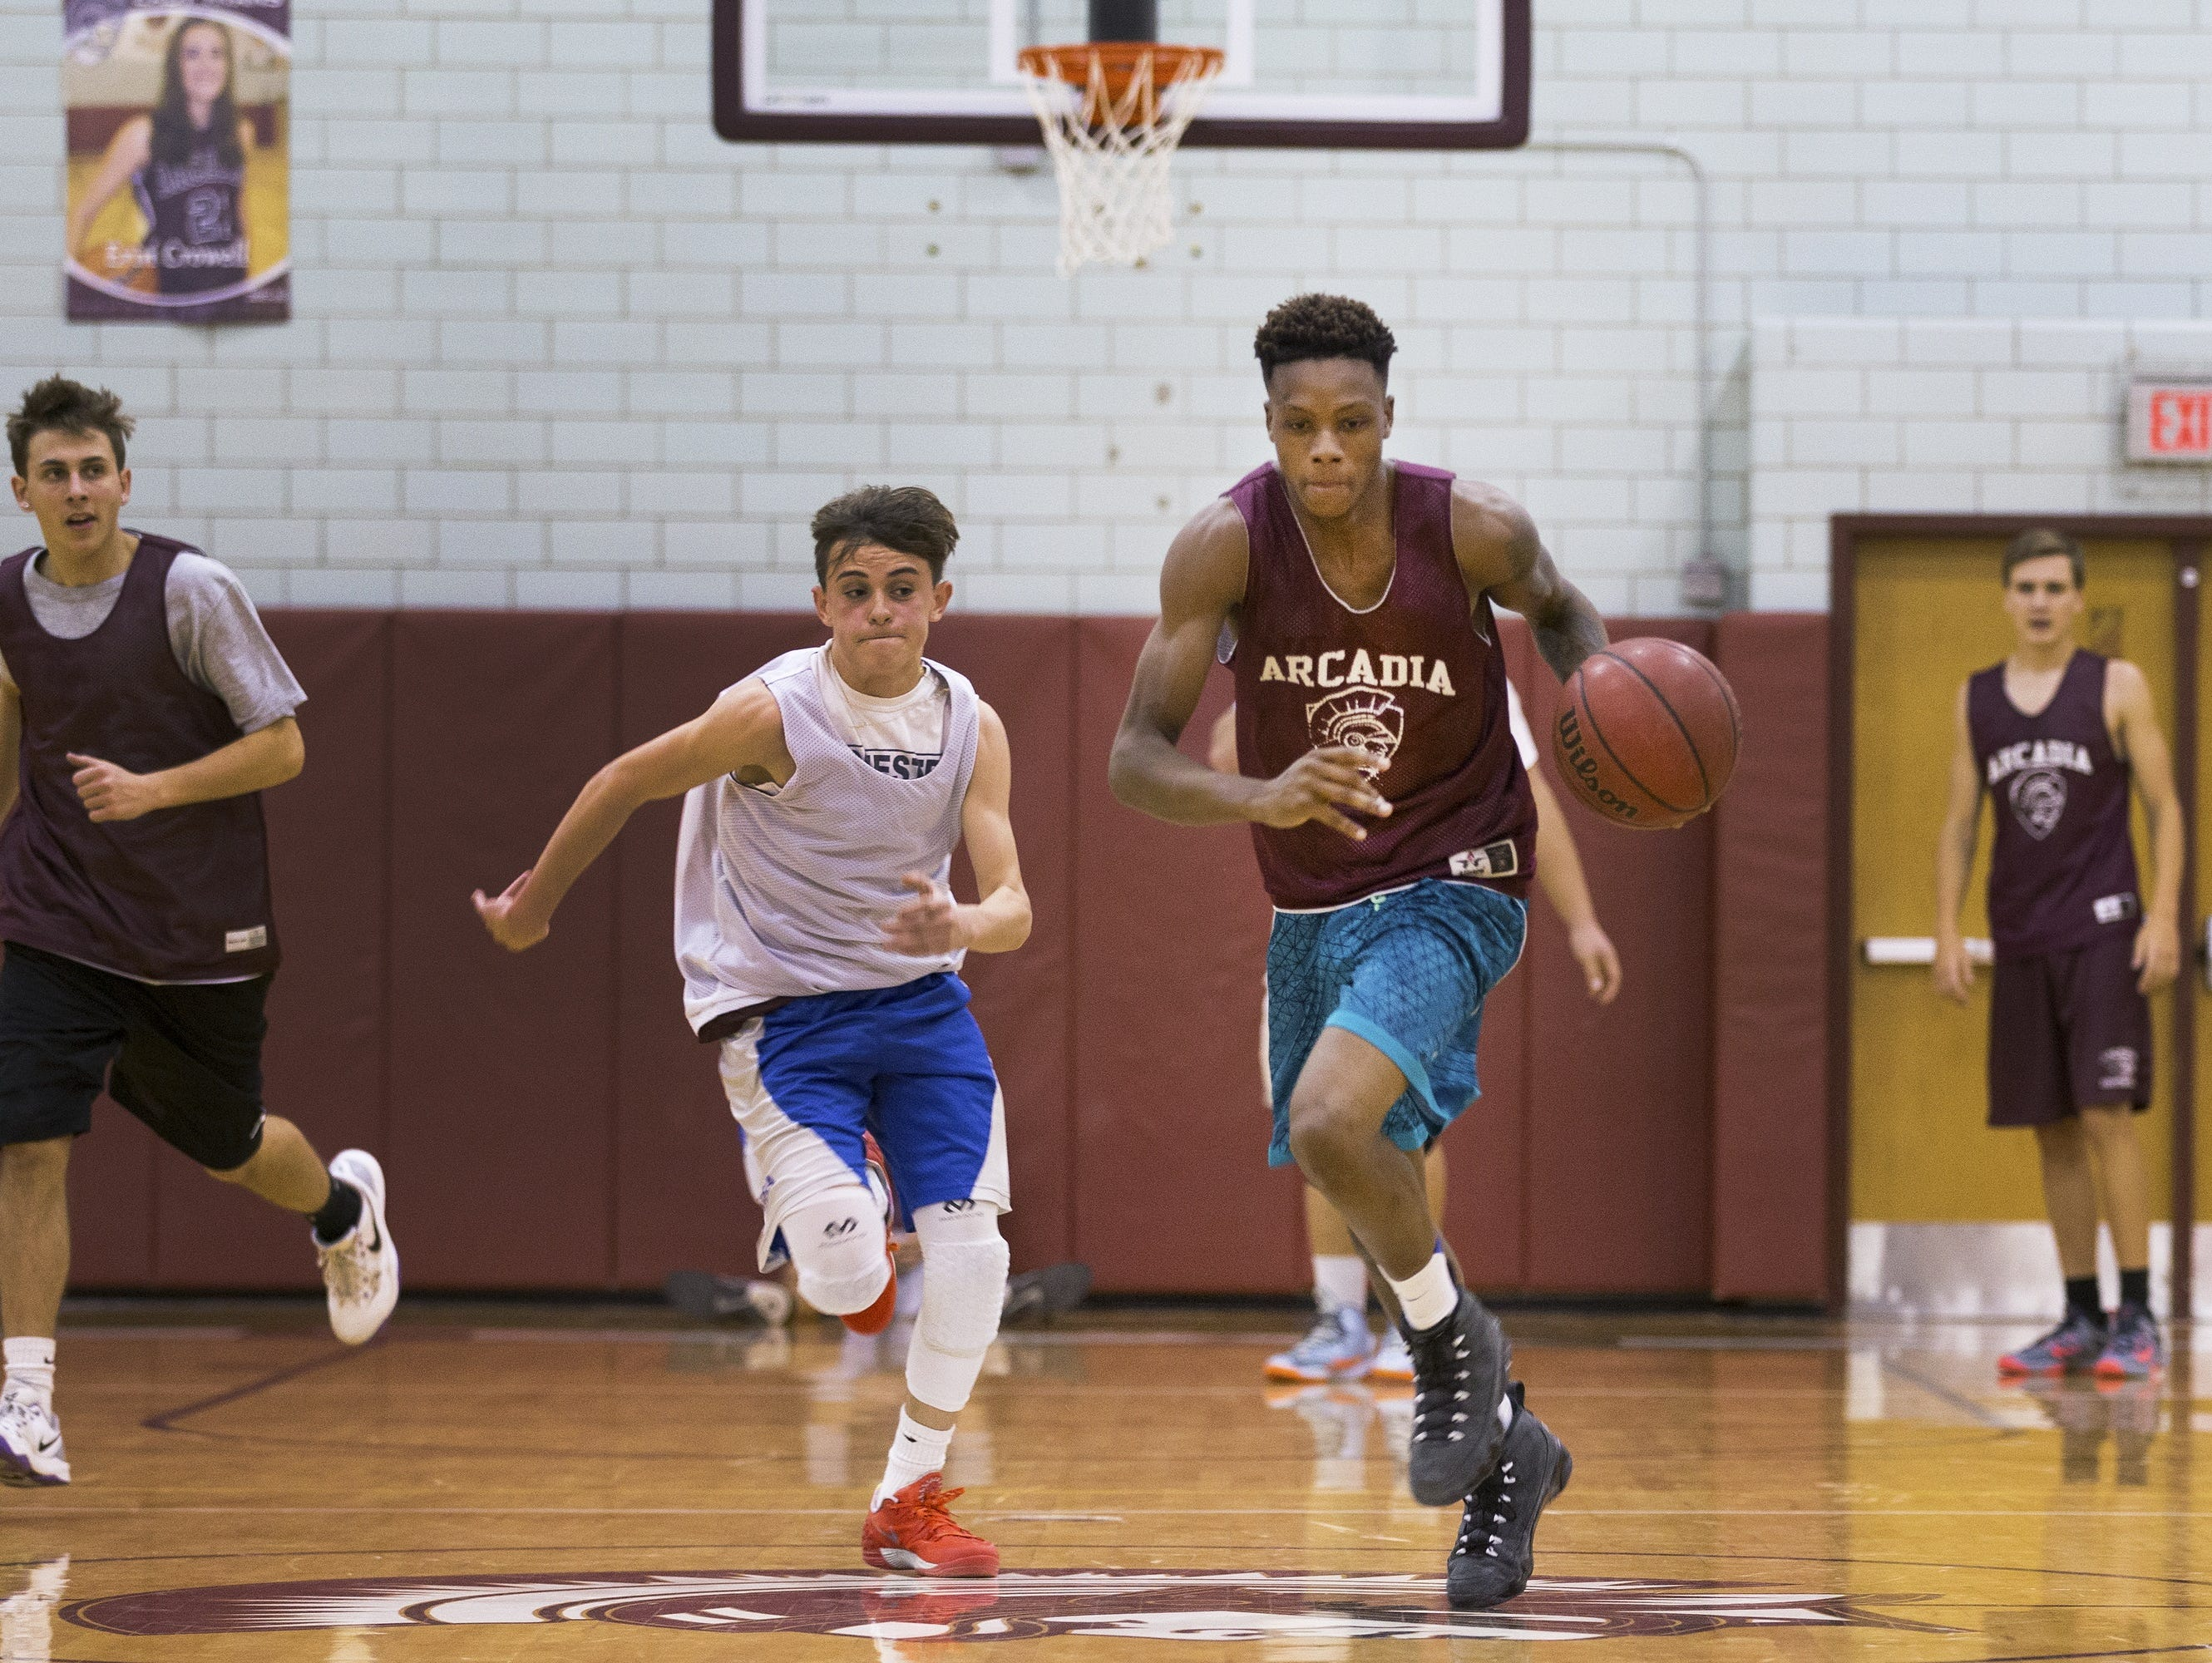 Greece Arcadia senior forward Keith McGee runs down the ball during a scrimmage in practice.